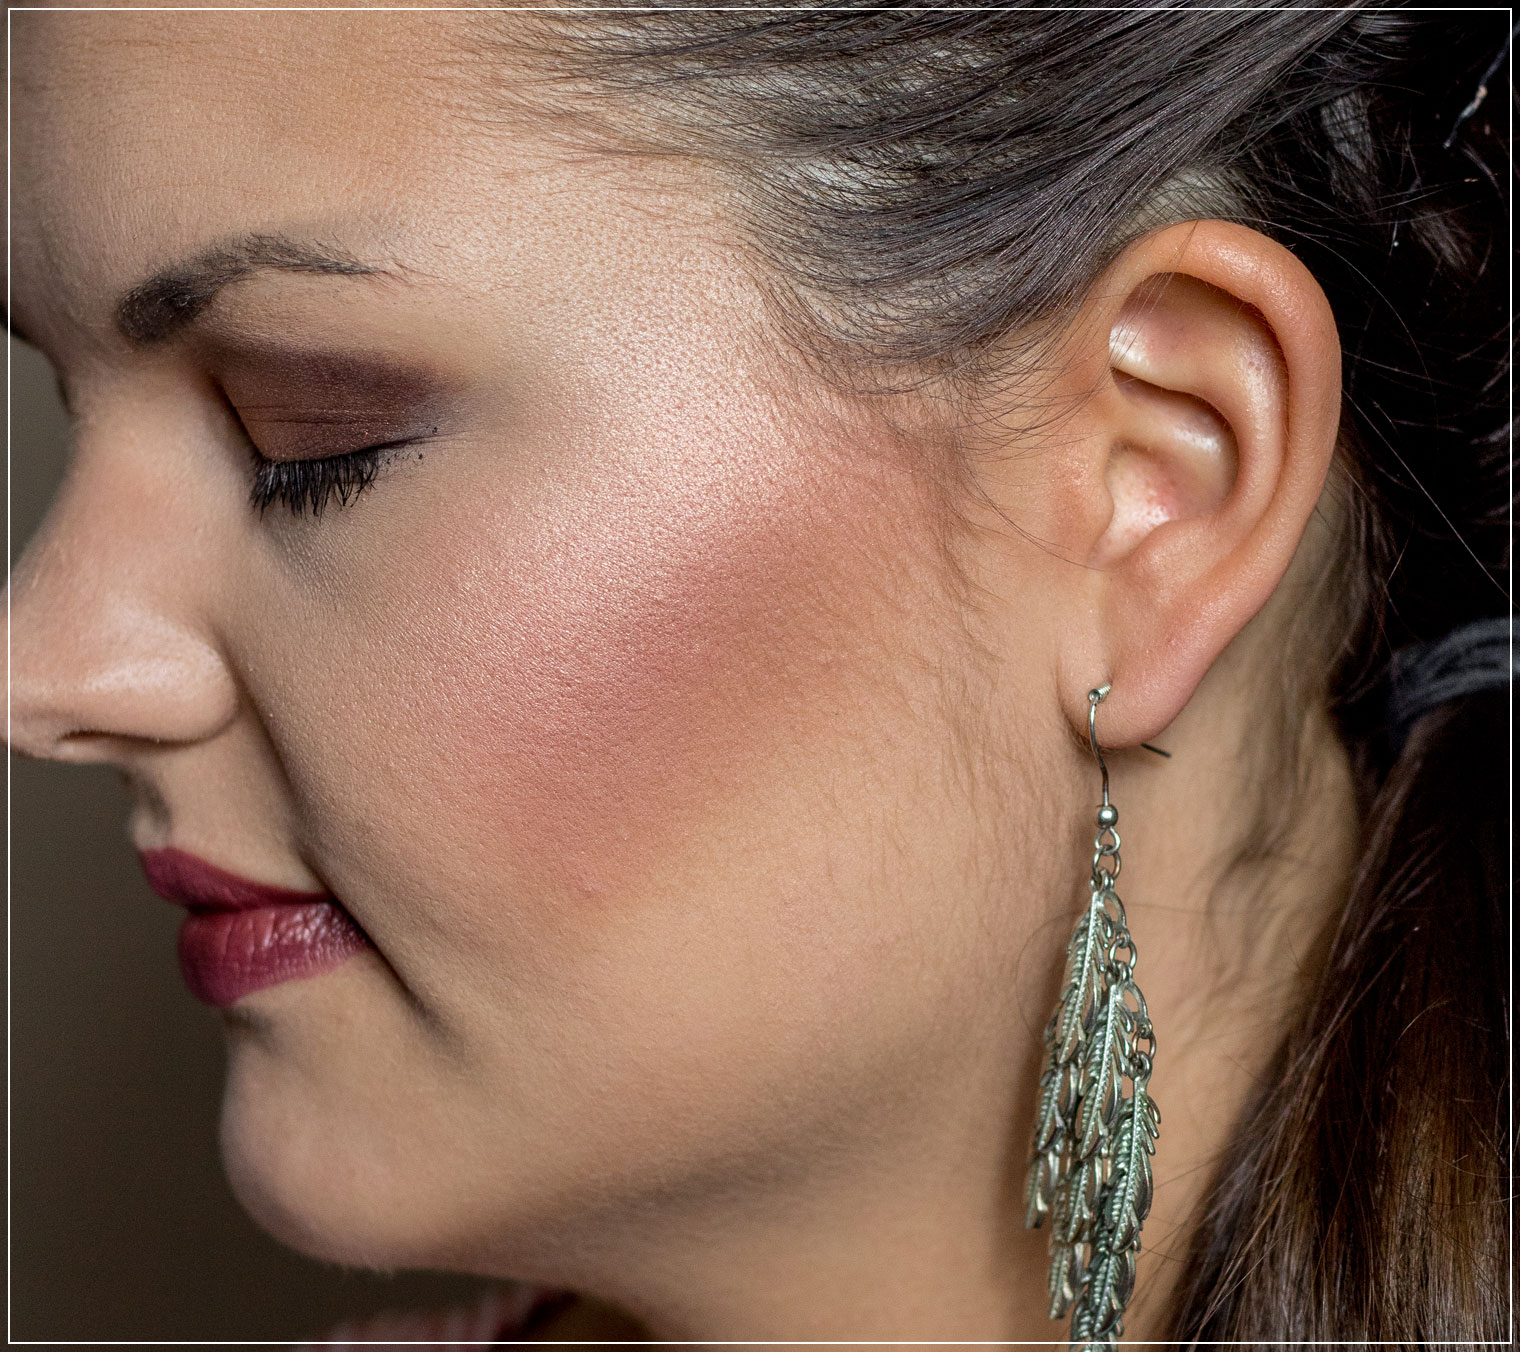 Detailansicht Wangen-Make-Up